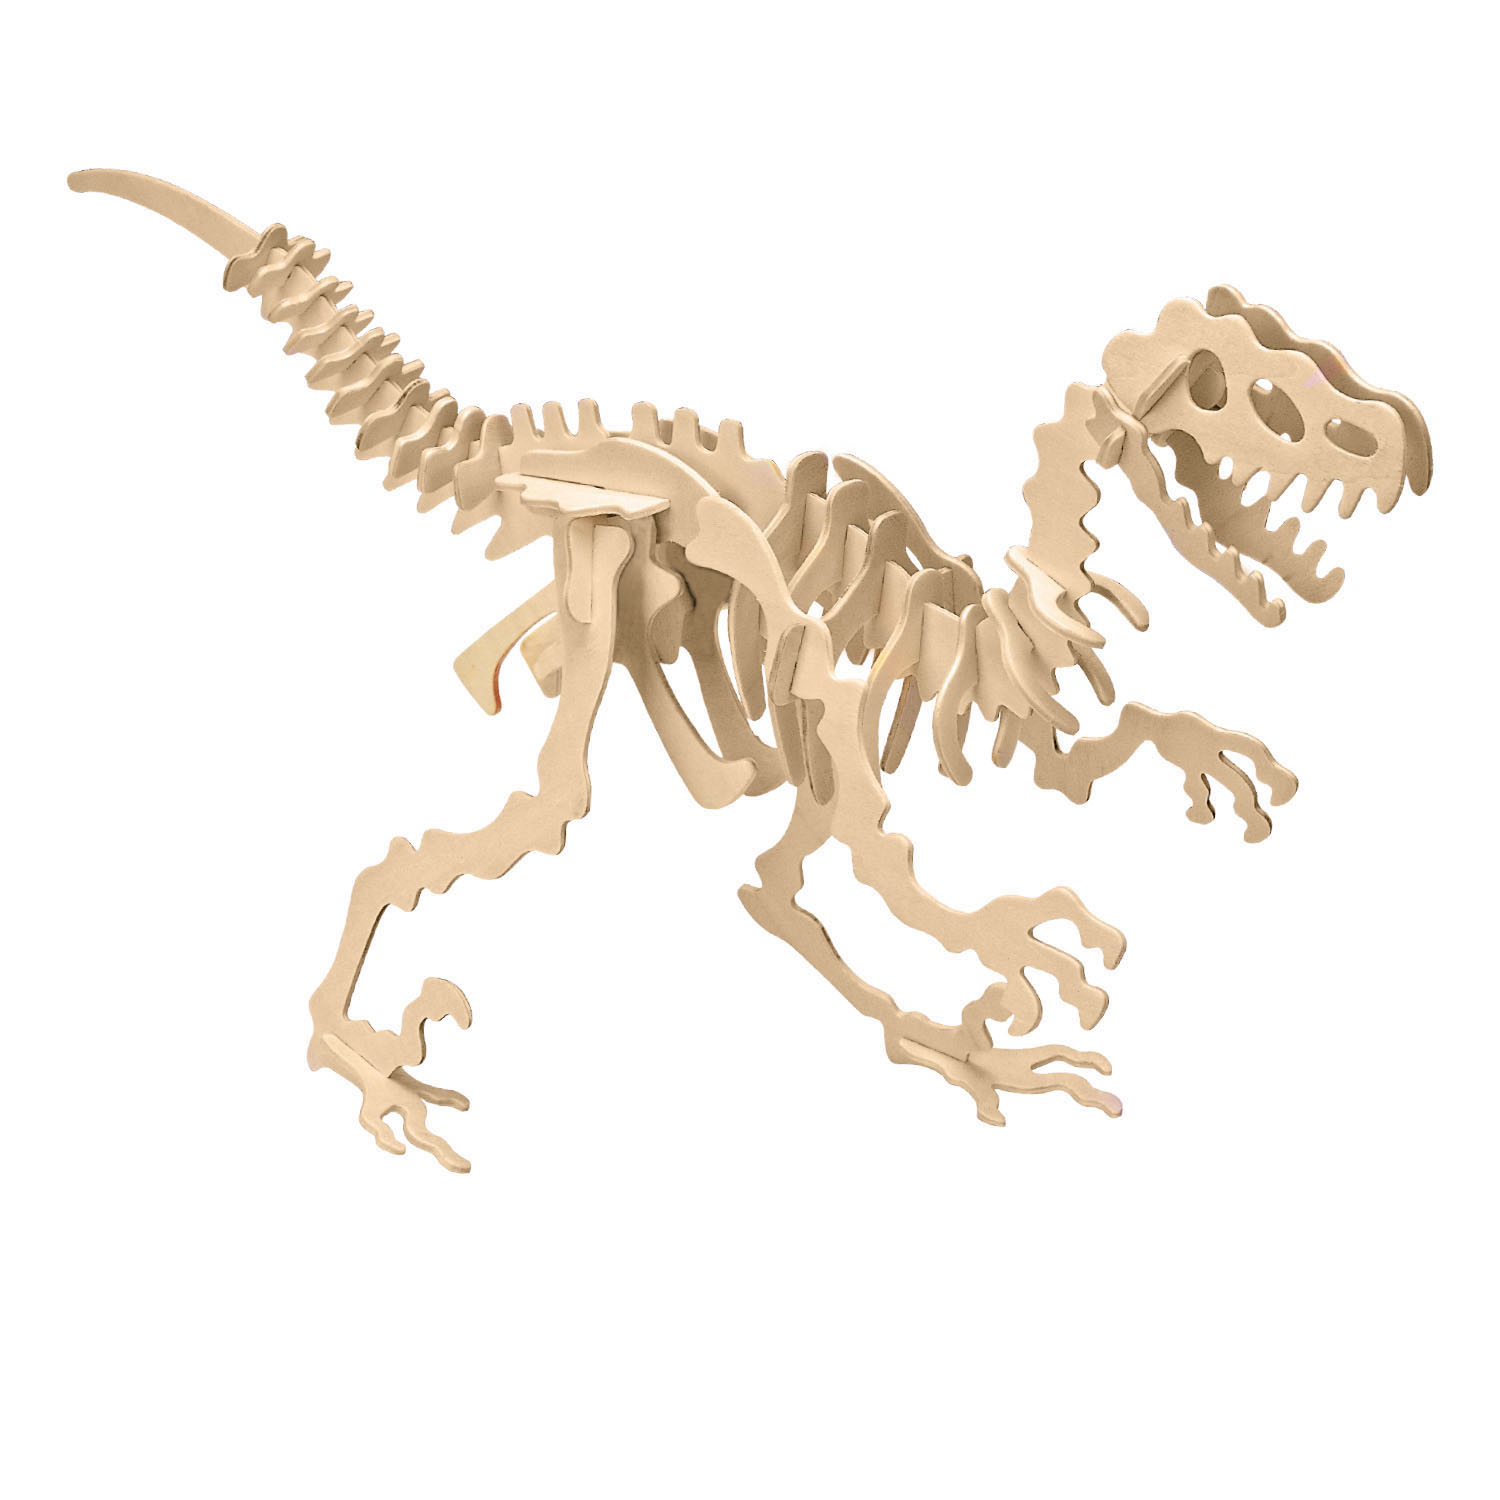 3d Wooden Jigsaw Puzzle Velociraptor Large